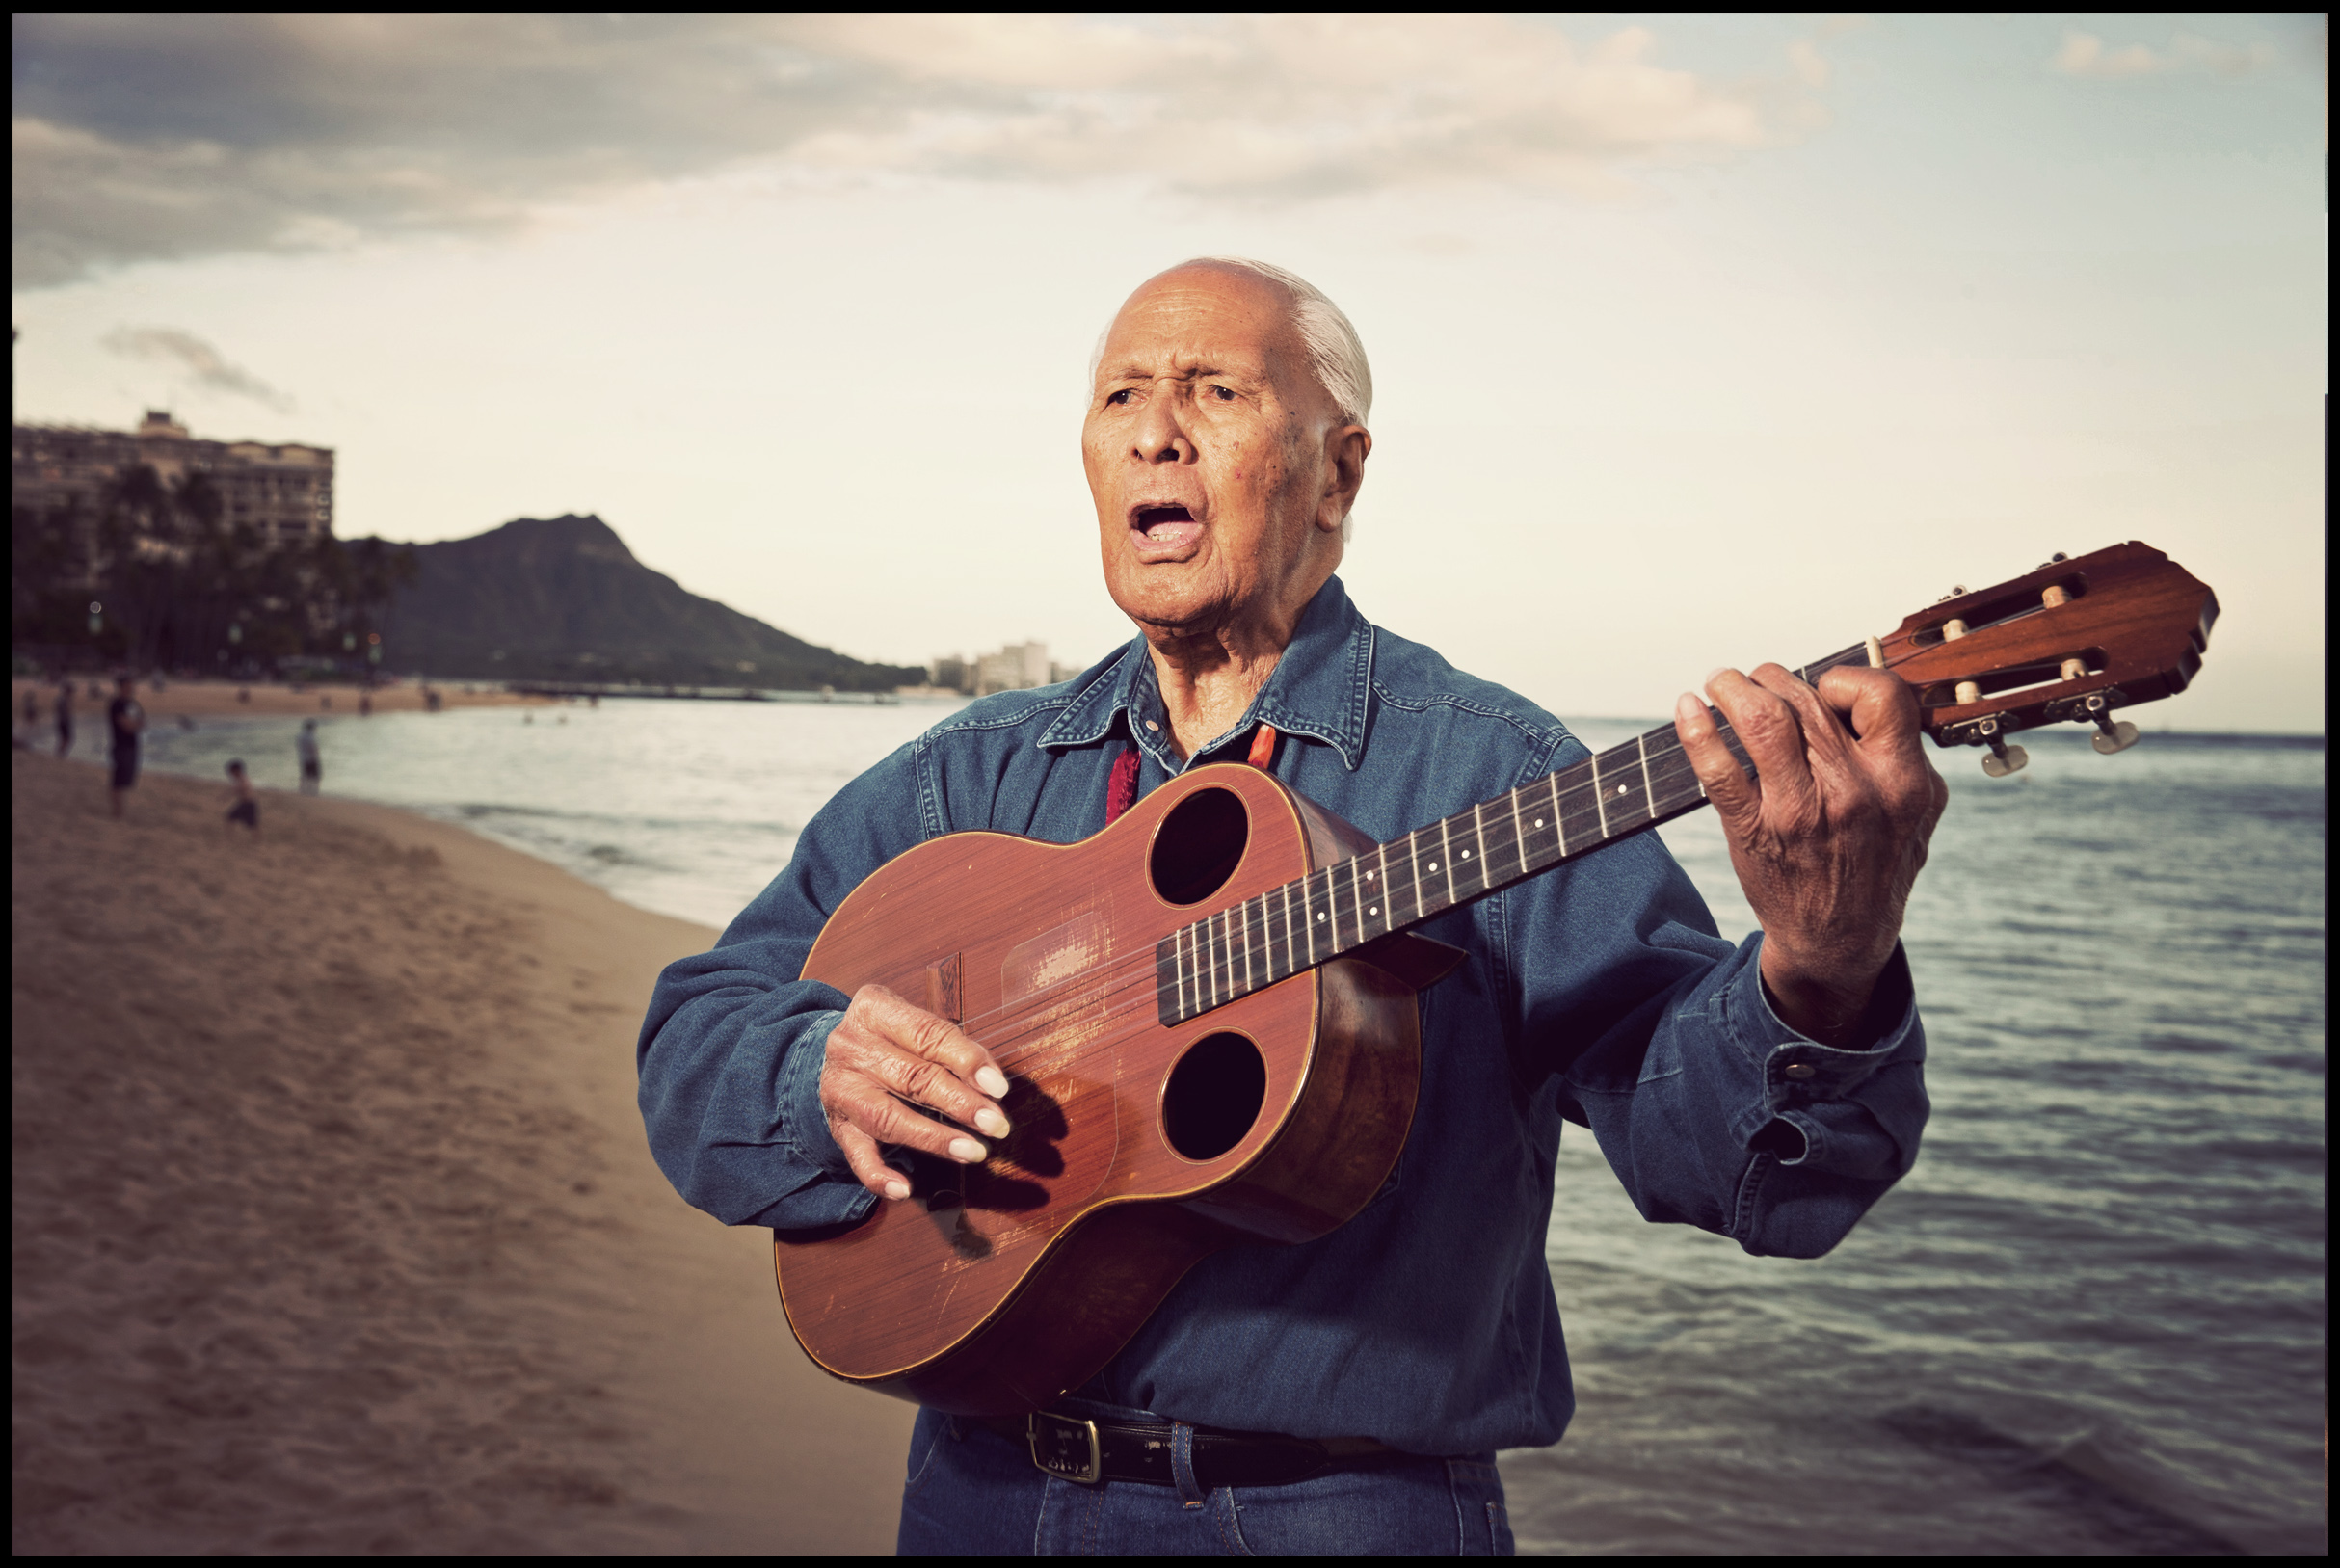 Ukulele legend Eddie Kamae on Waikiki Beach for The Los Angeles Times.